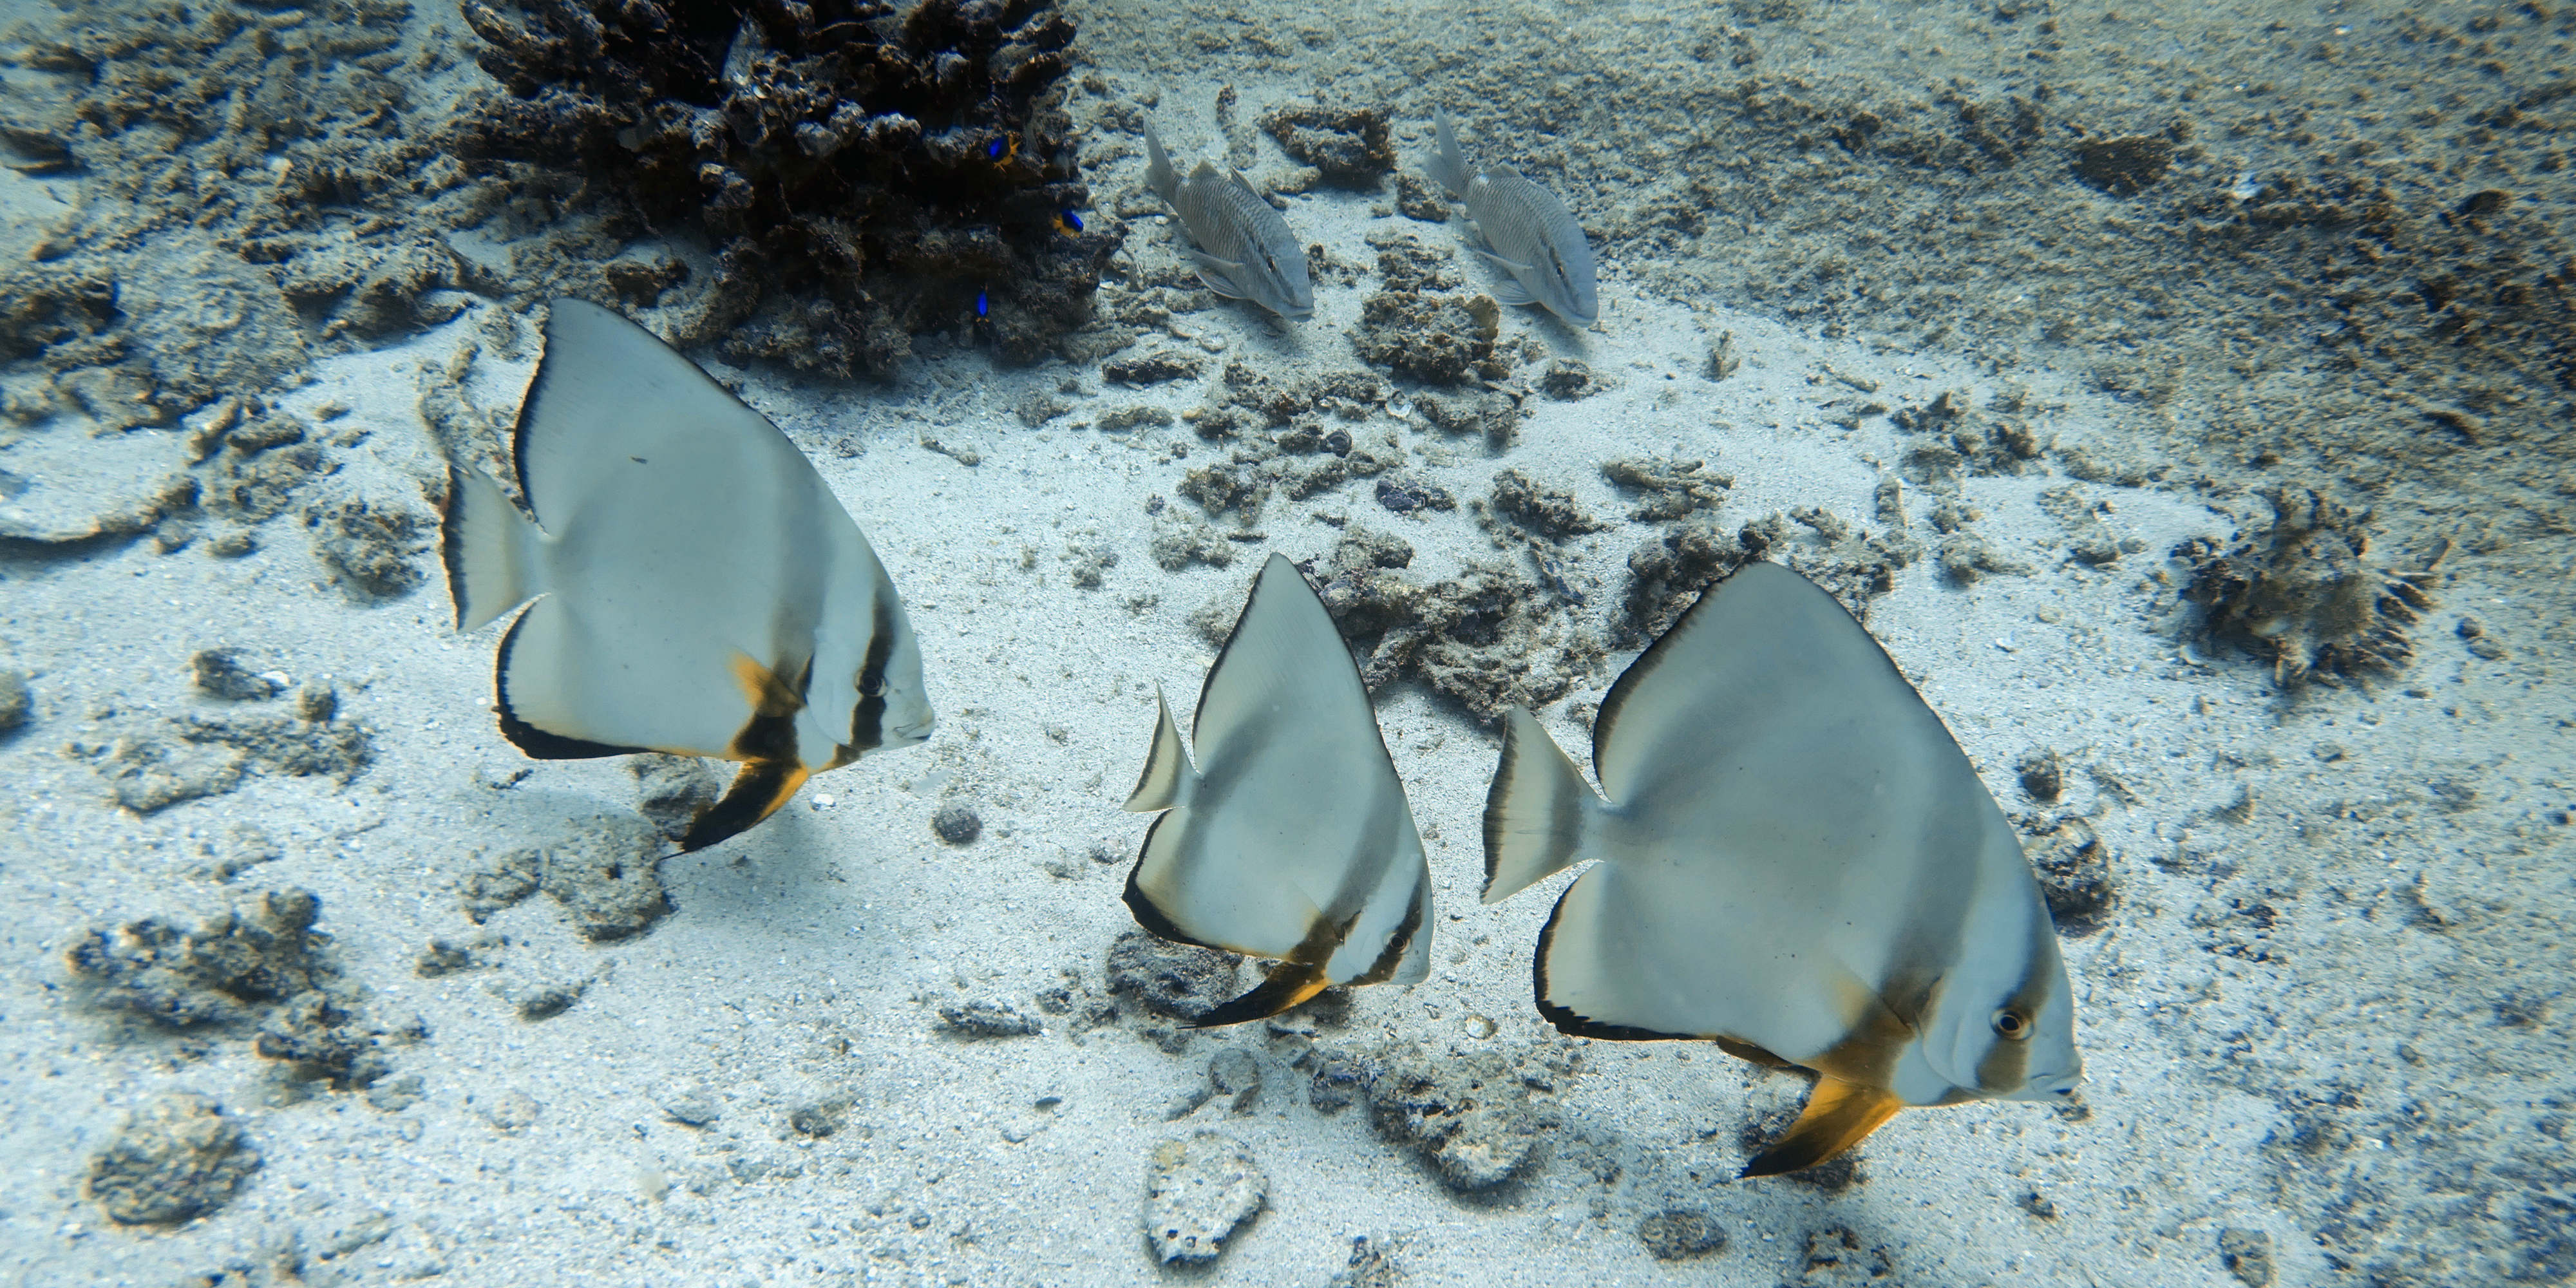 As a volunteer in Mahe, you might spot various species when diving the coral reef.